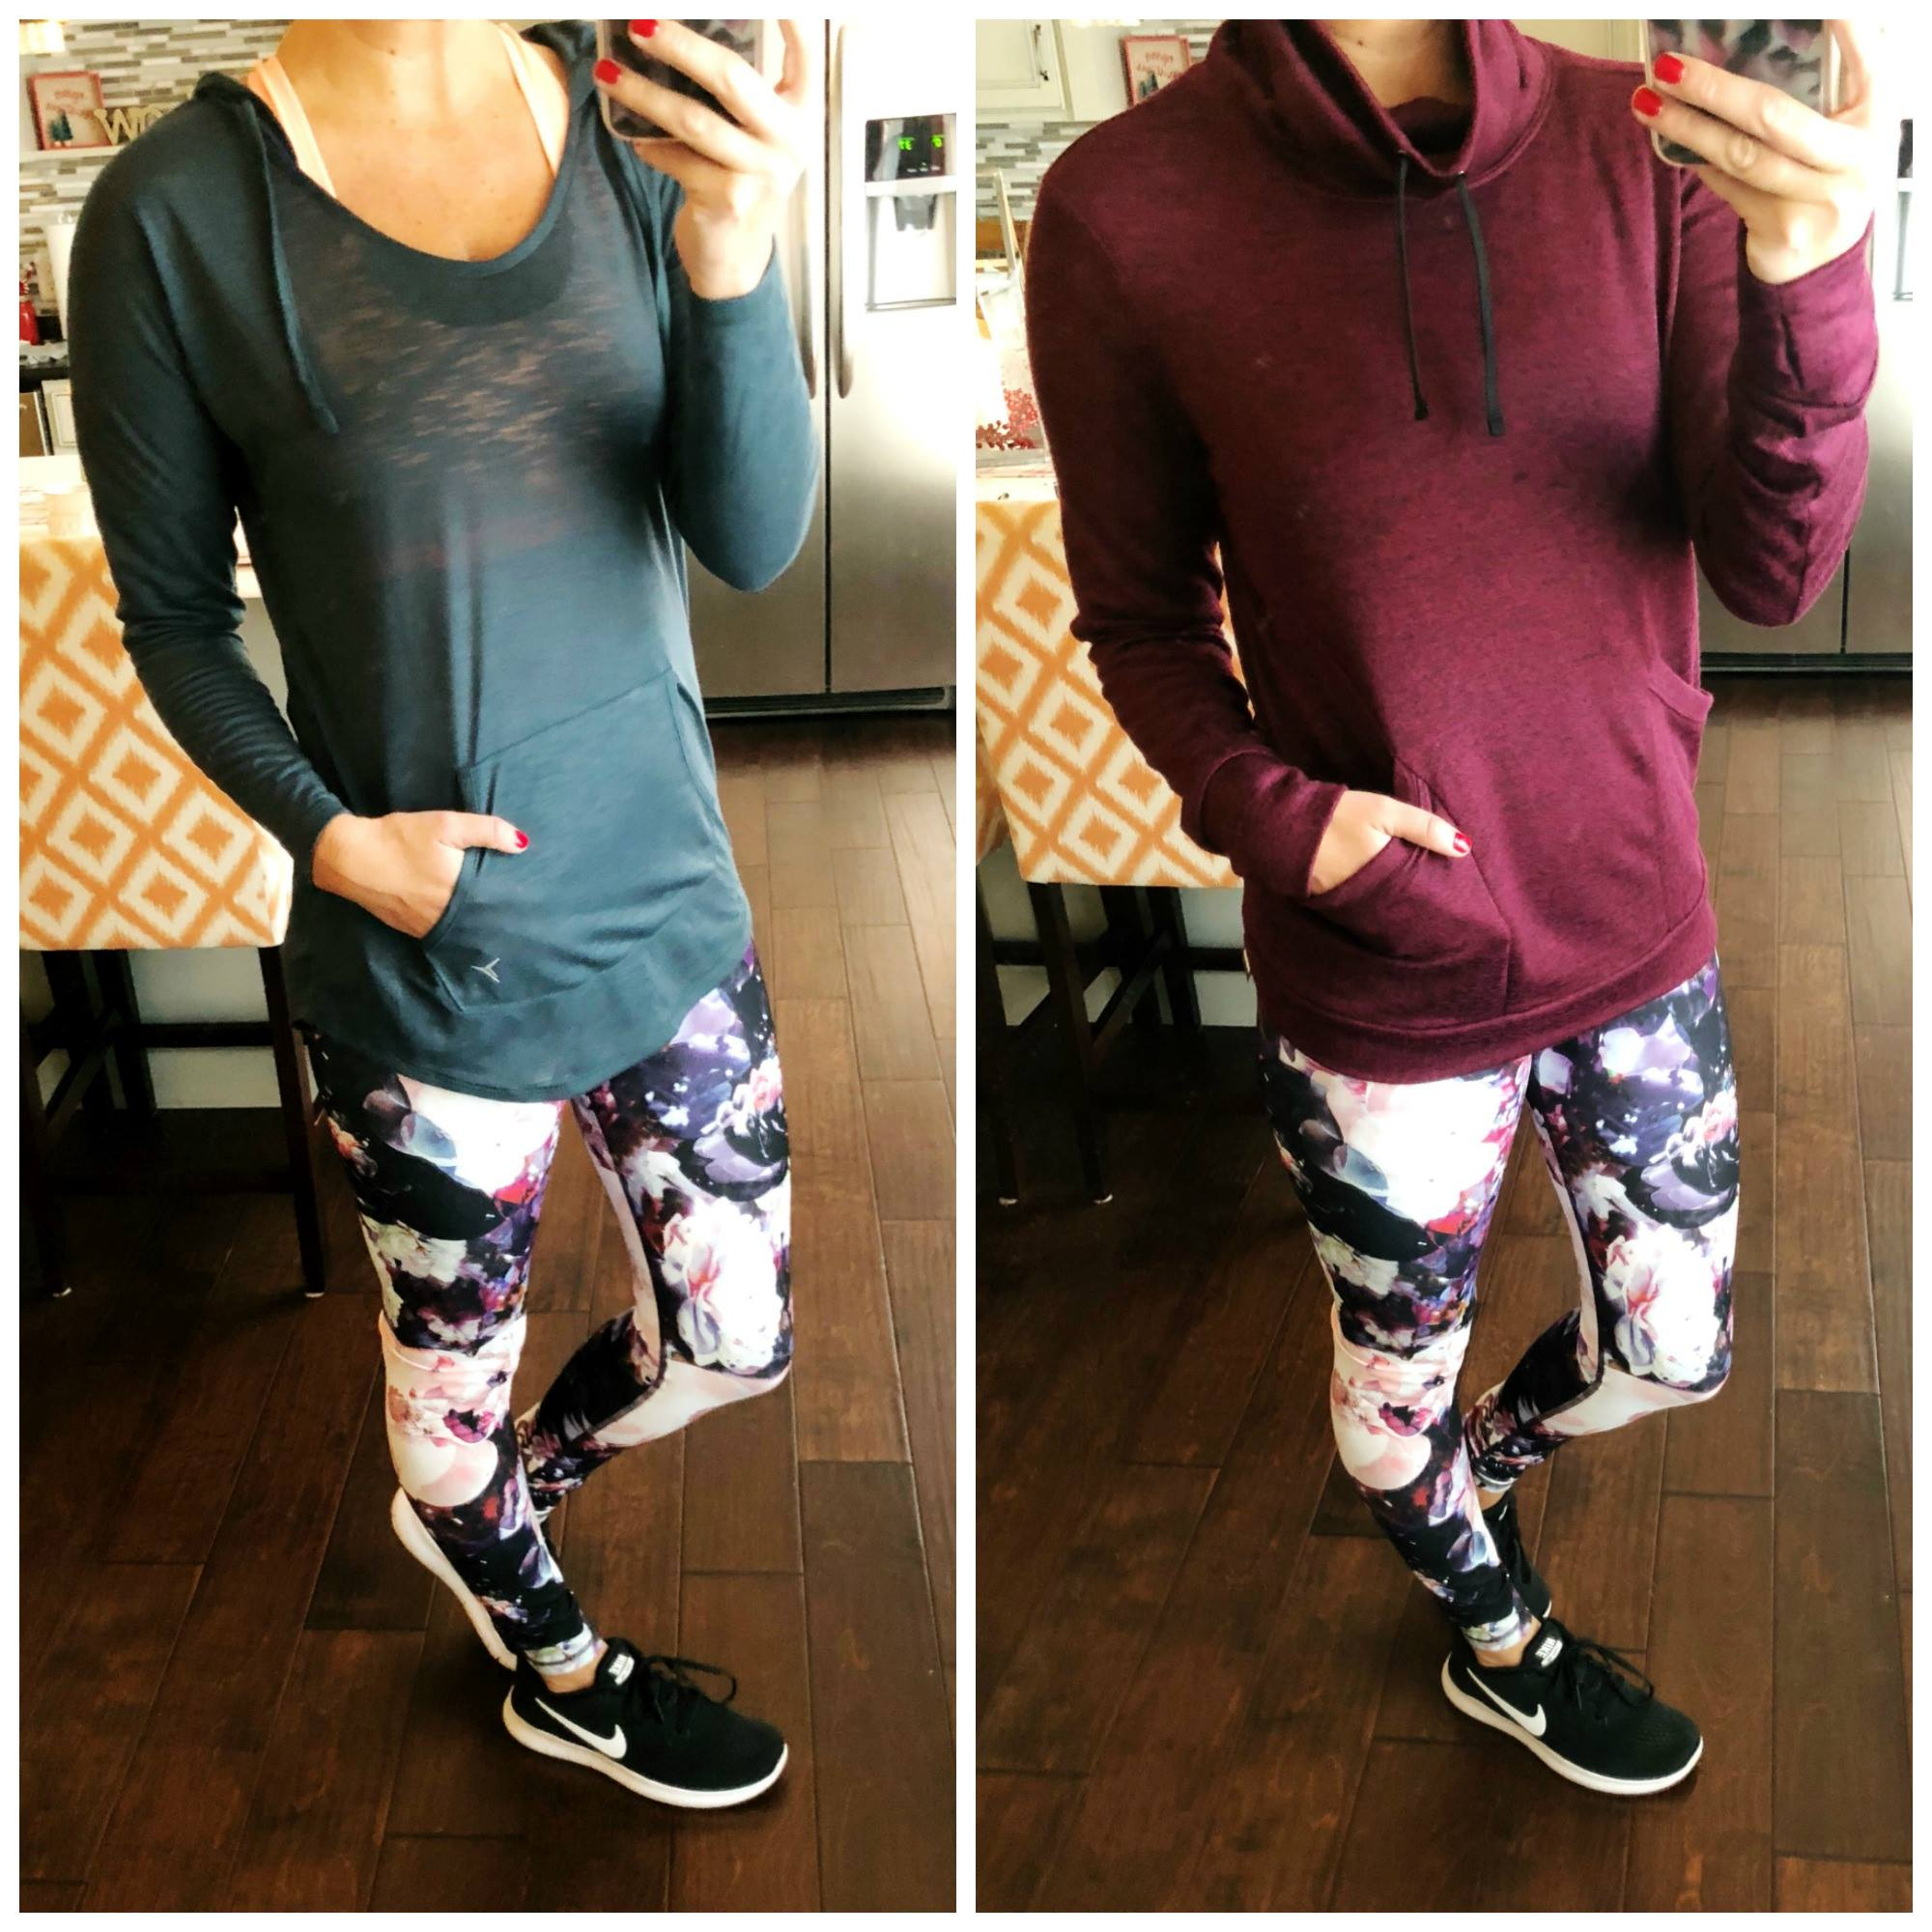 Workout Wear // Casual Outfit